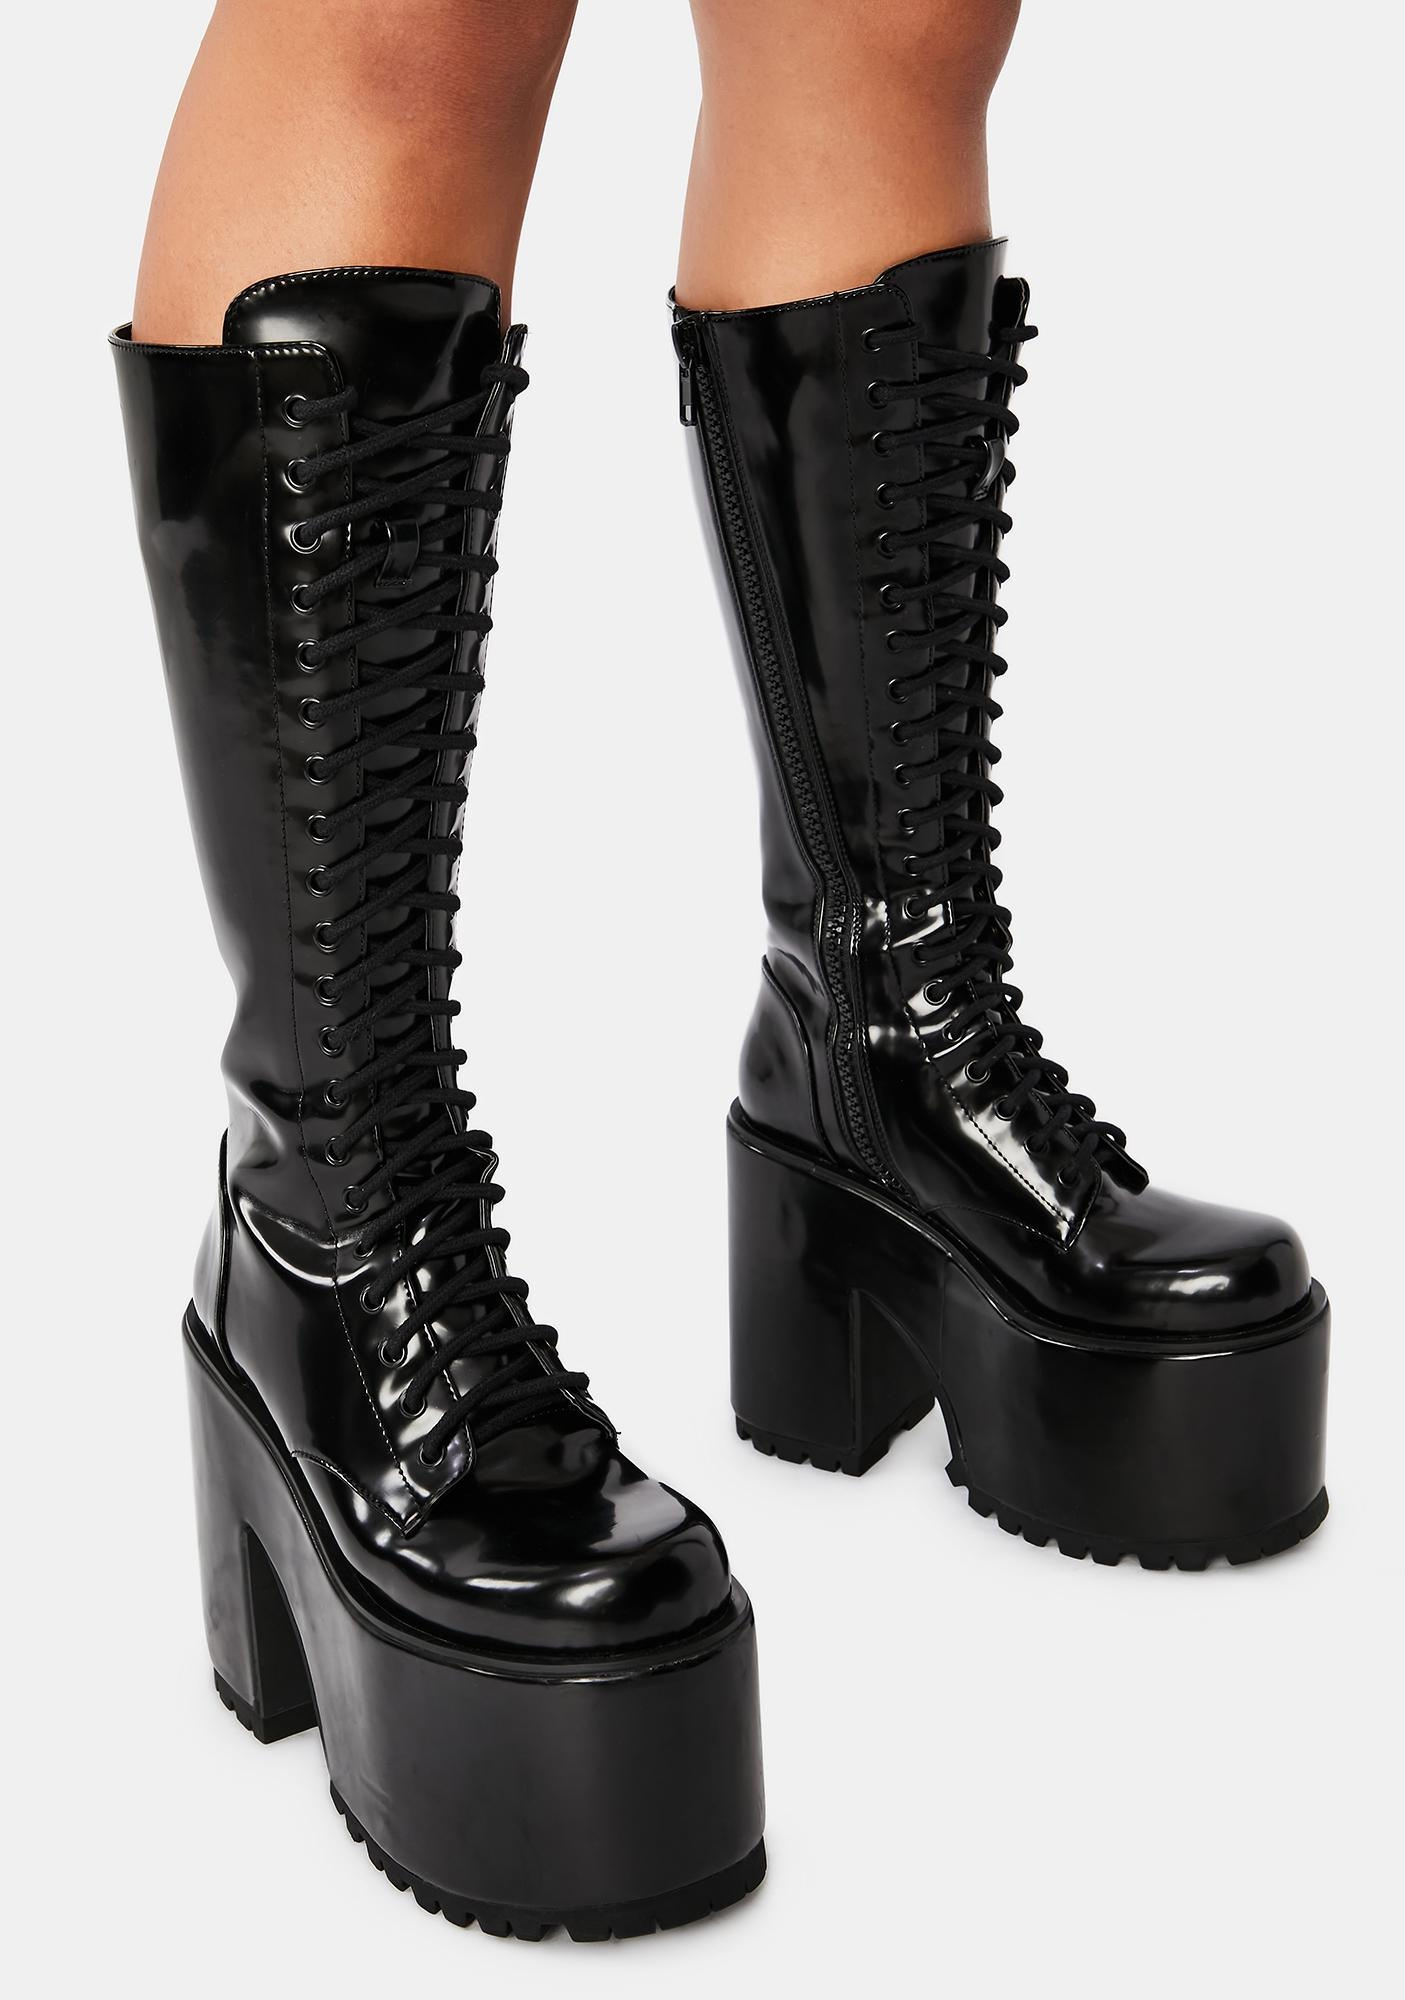 Current Mood Rise And Fall Knee High Boots